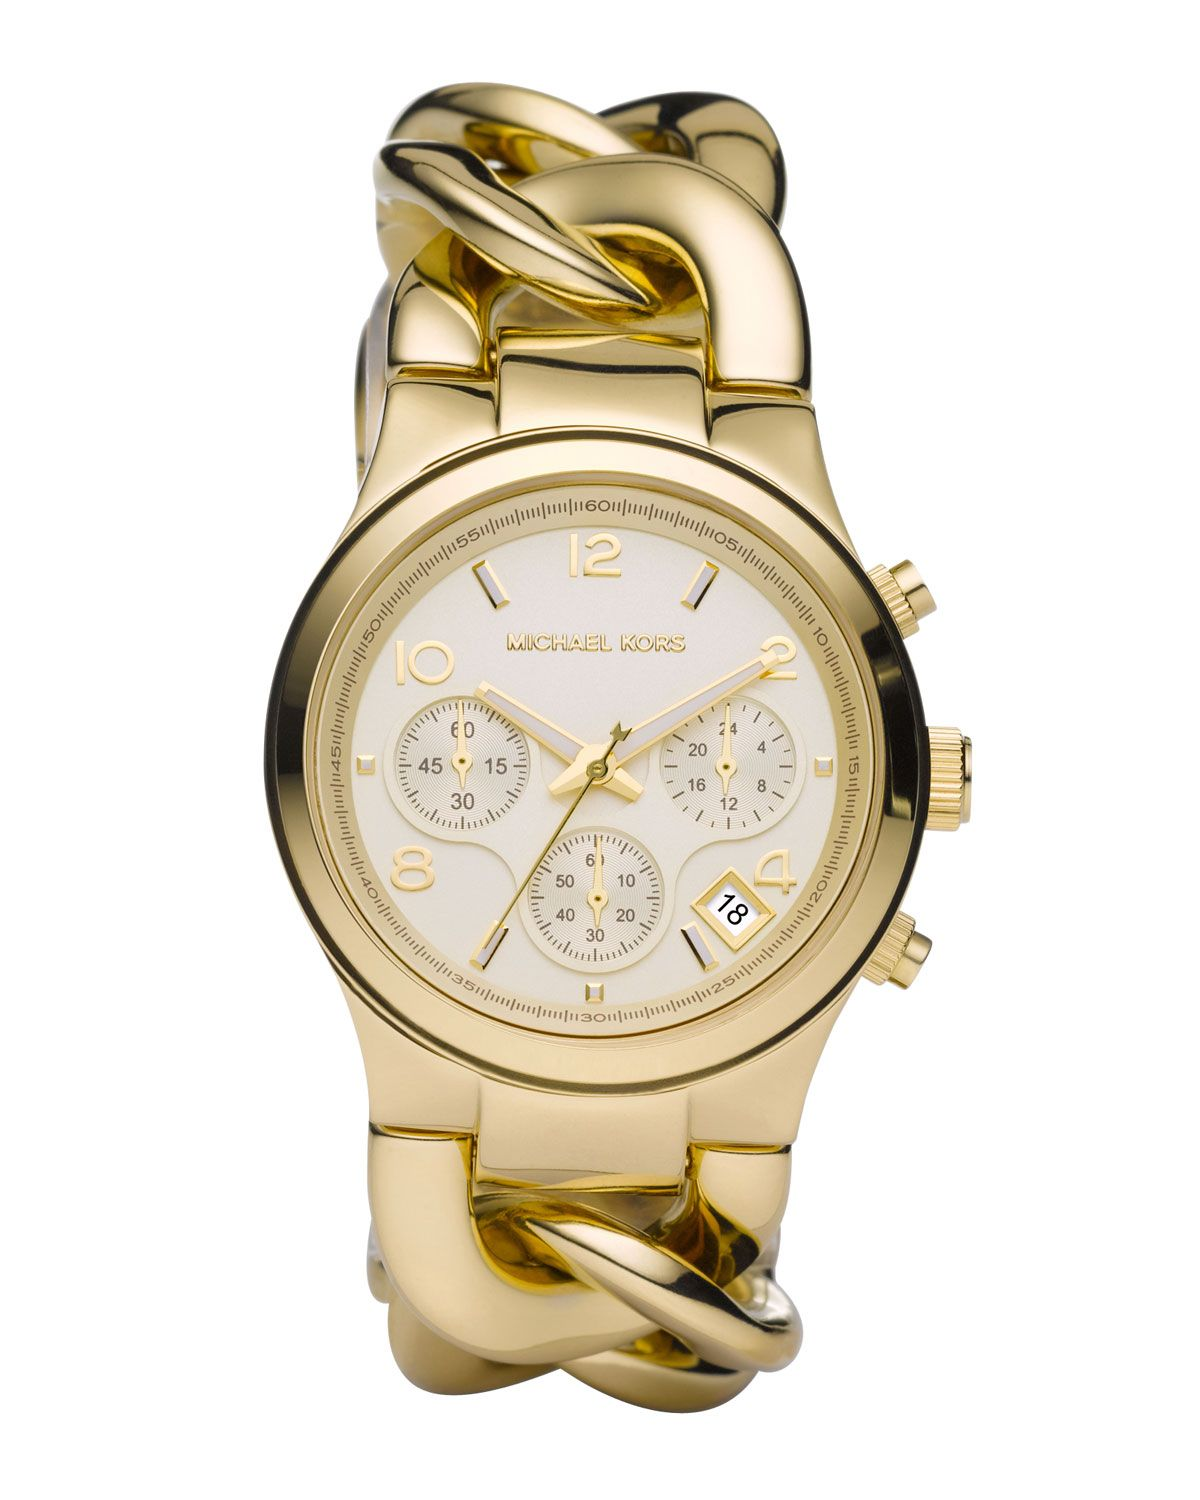 4a1e022cb107c A Michael Kors chronograph watch in gold tone stainless steel has a  polished look and a striking shine.